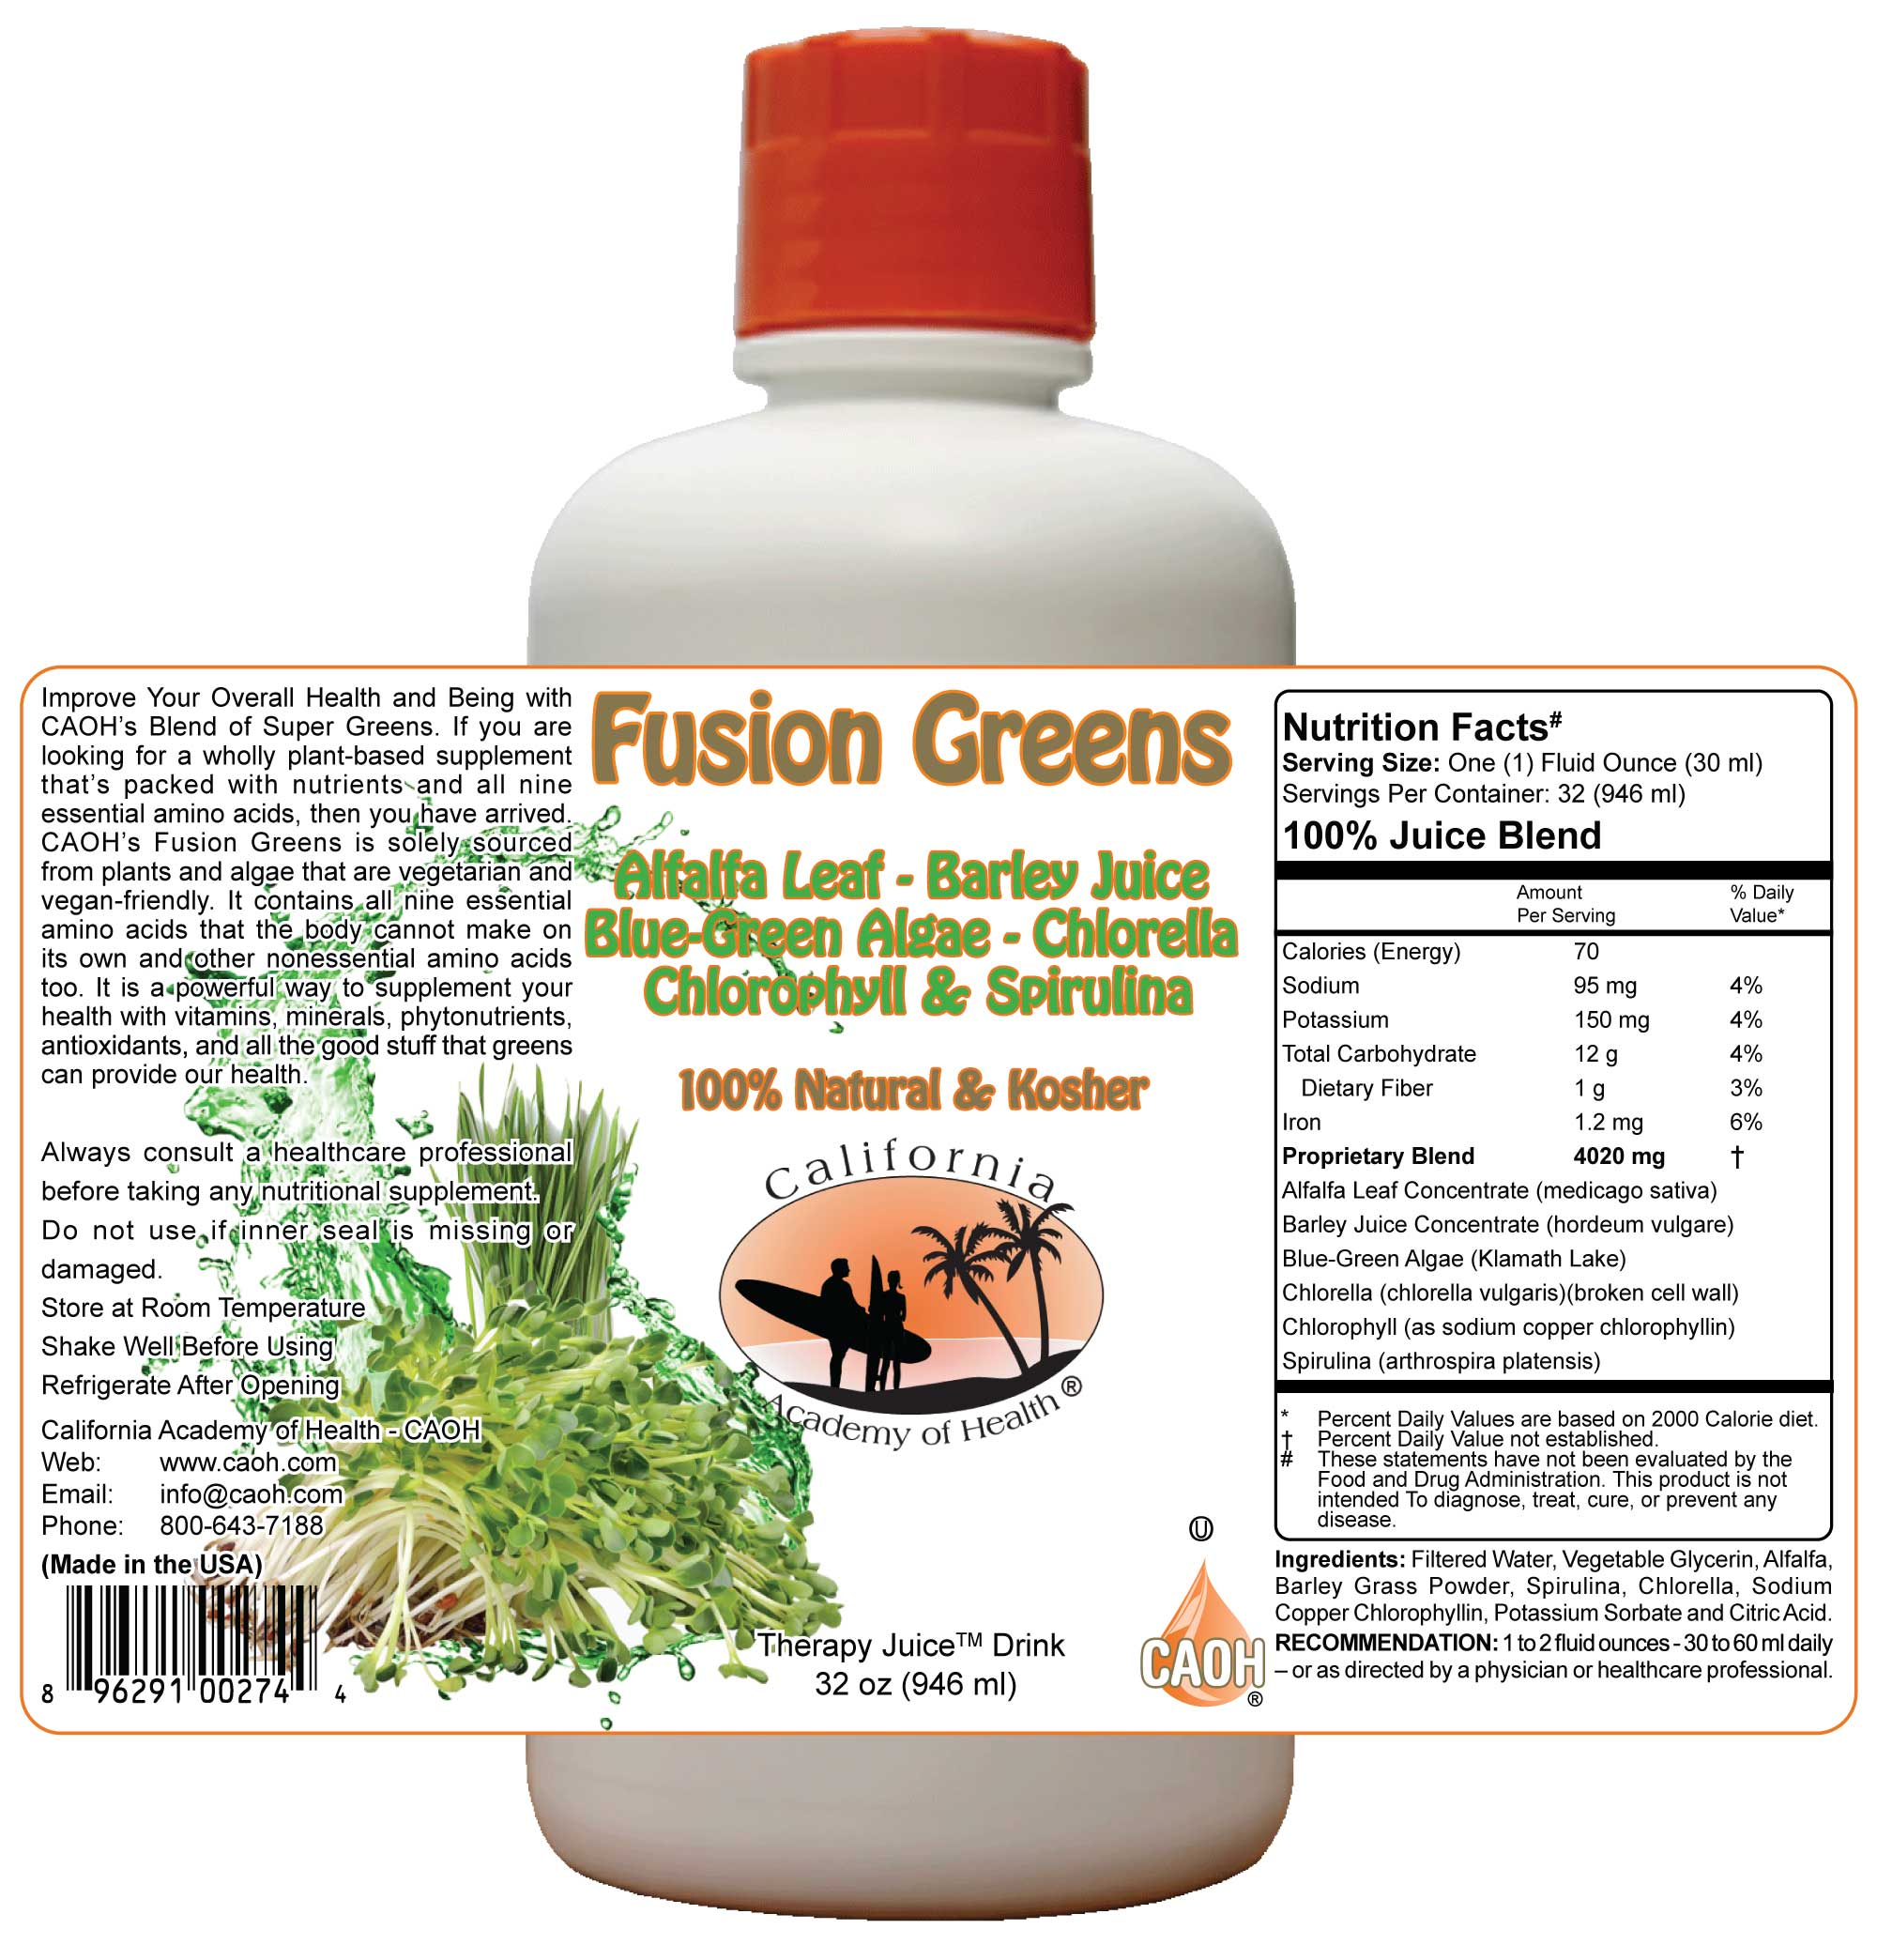 Fusion Greens a Superfood Green Juice Blend 32 oz